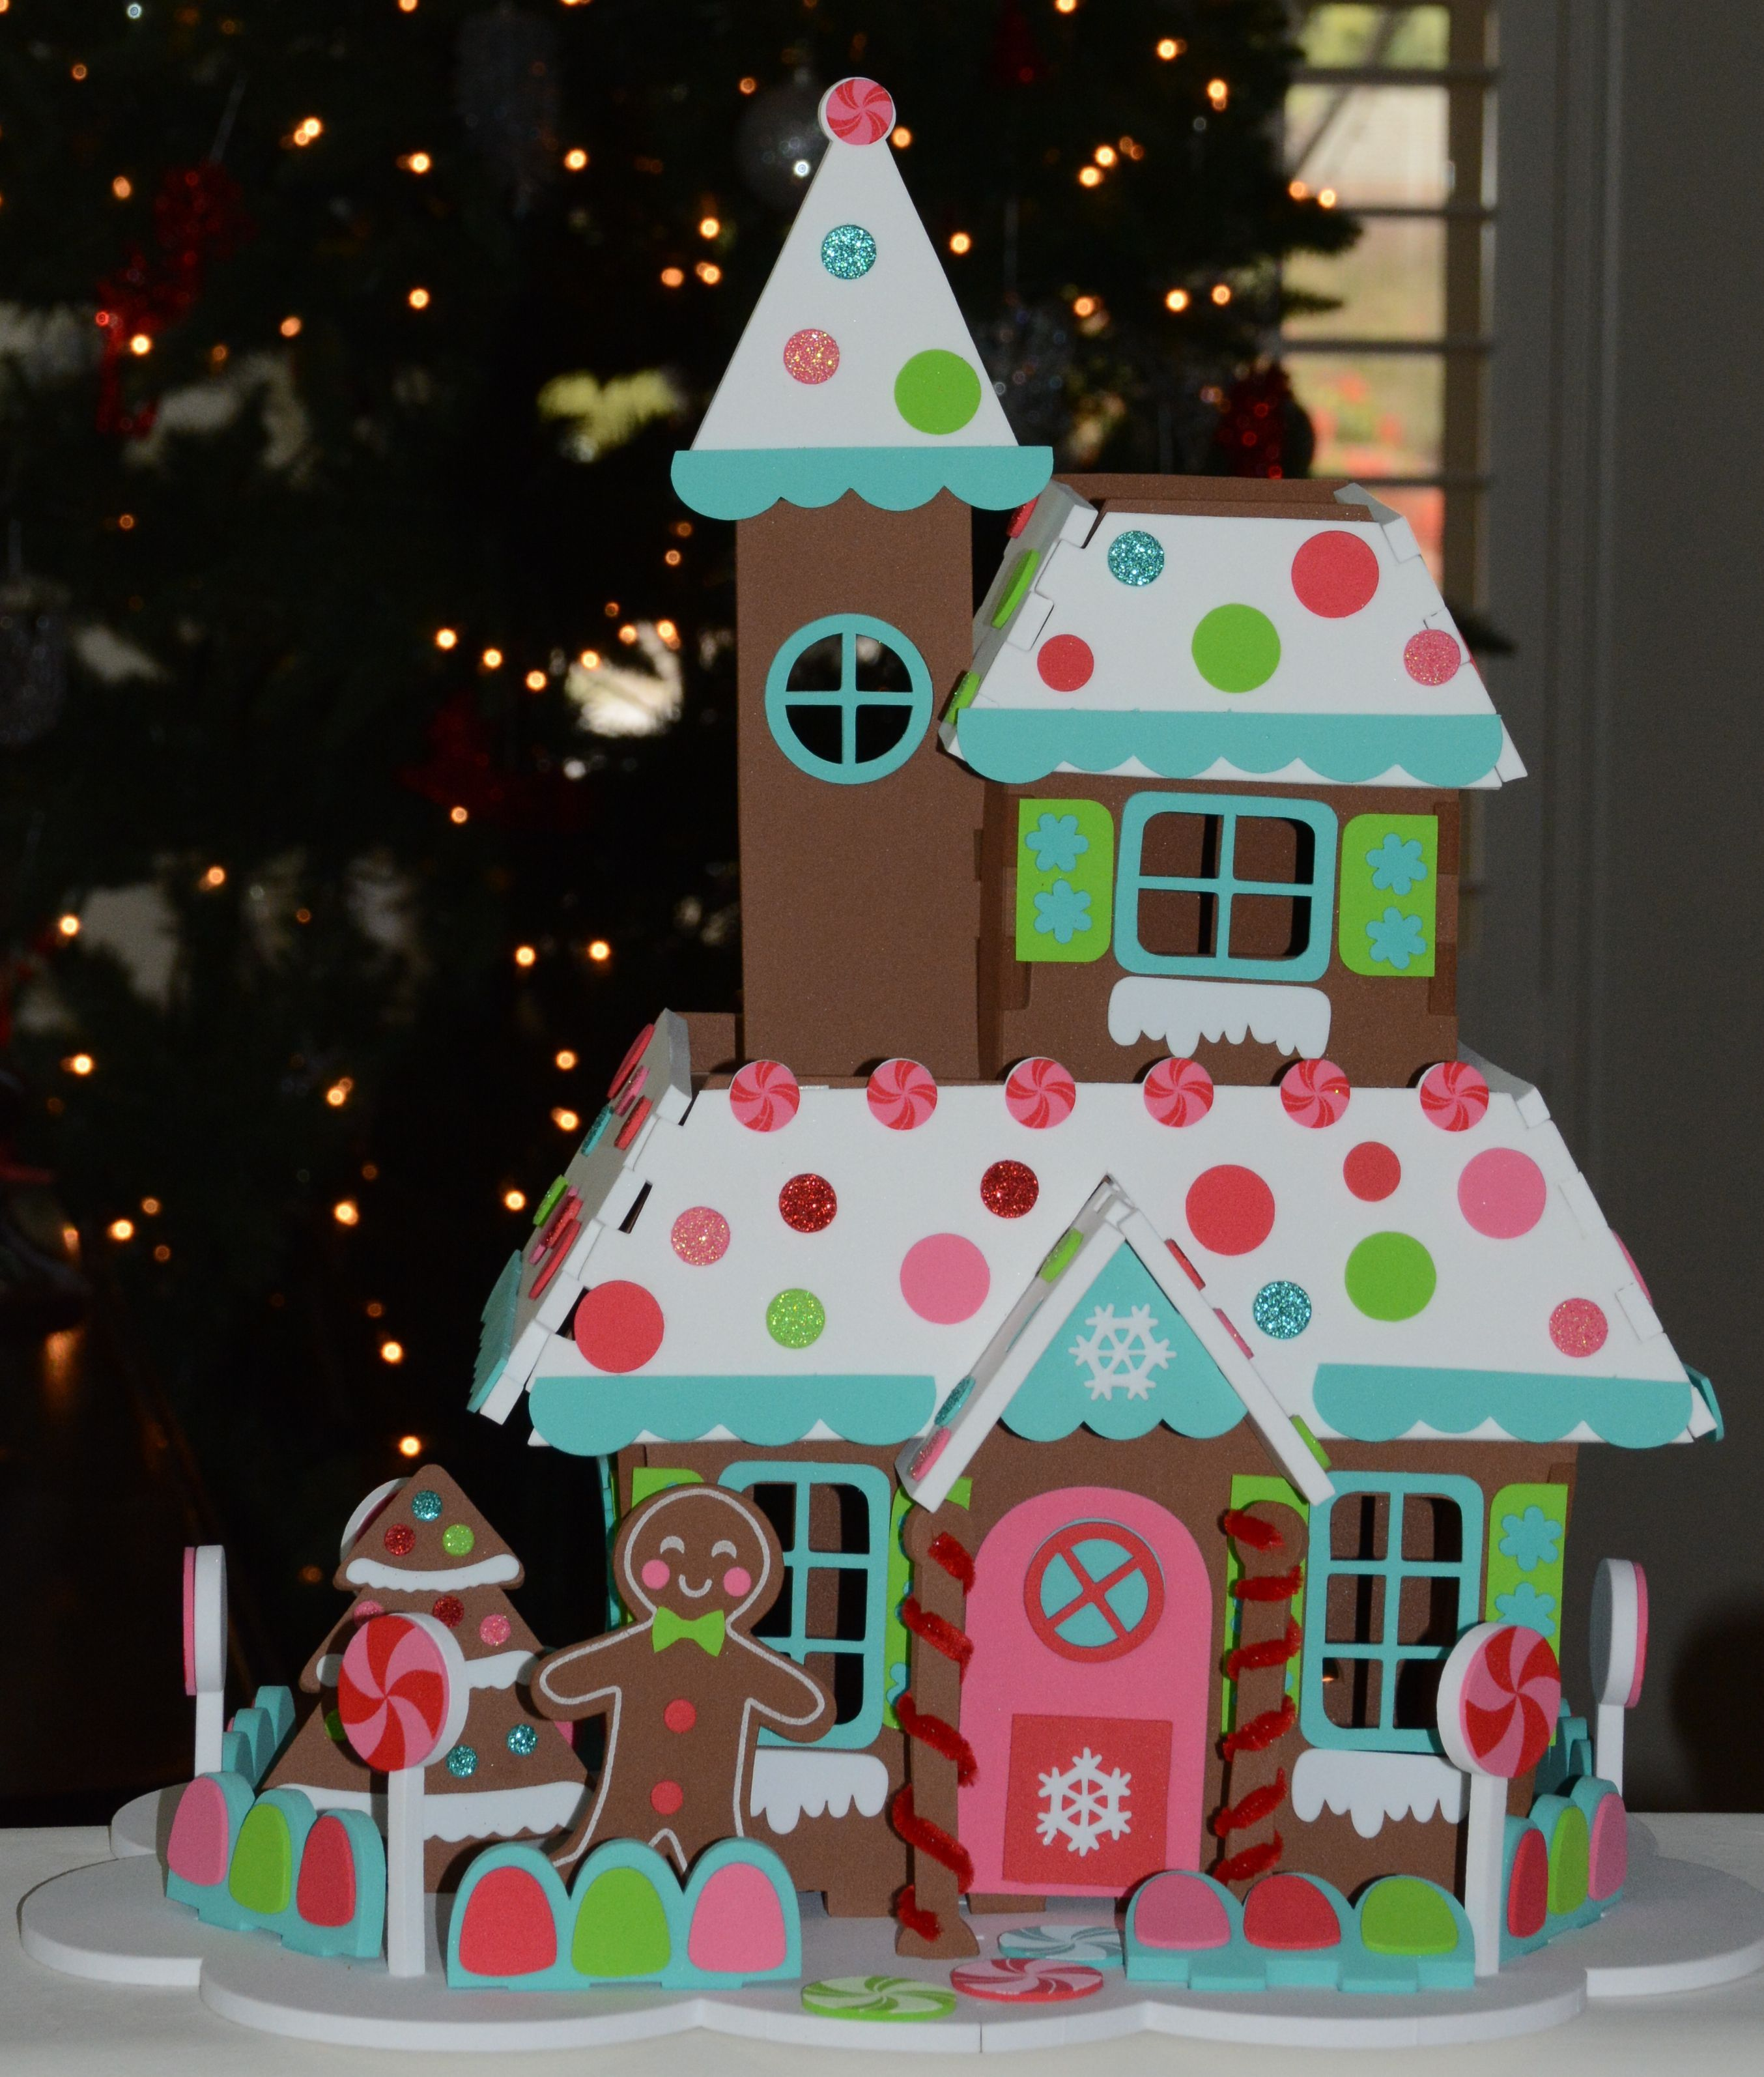 Gingerbread House Made Out Of Foam Board The Whole Family Can Make